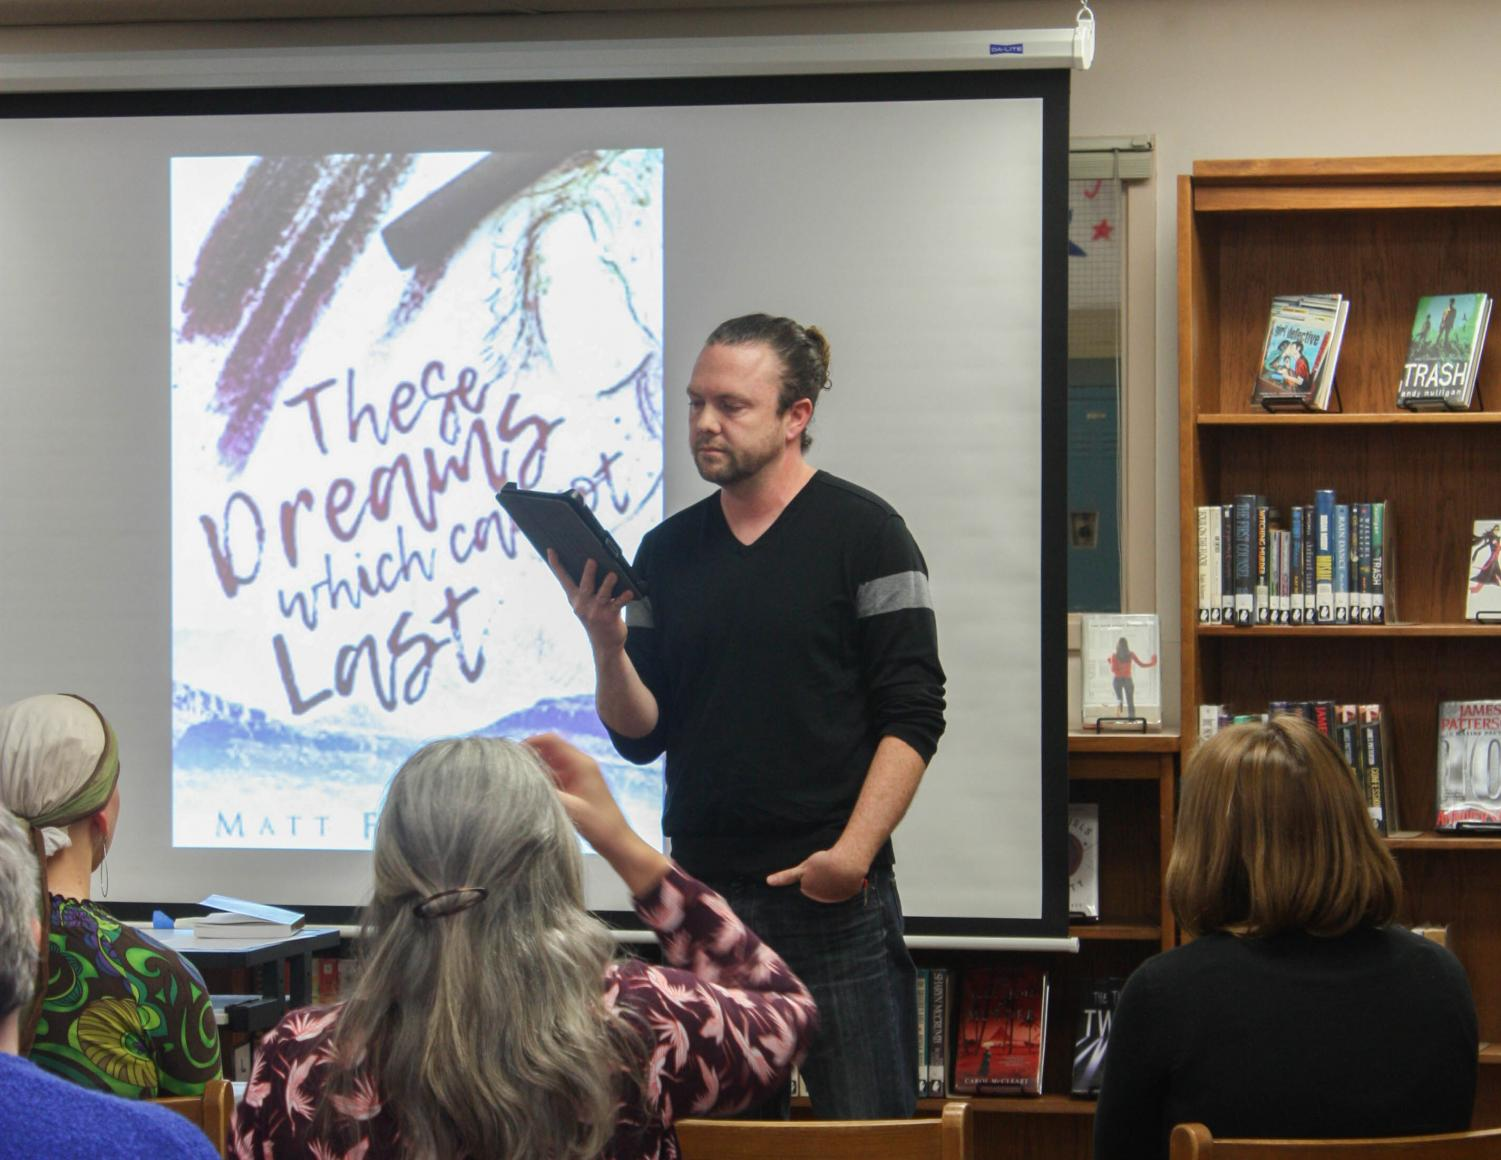 English teacher Matt Flickinger reads a chapter from his coming-of-age novel These Dreams Which Cannot Last, originally published in August 2017. Flickinger's novel has earned a score of 4.9/5 on Goodreads.